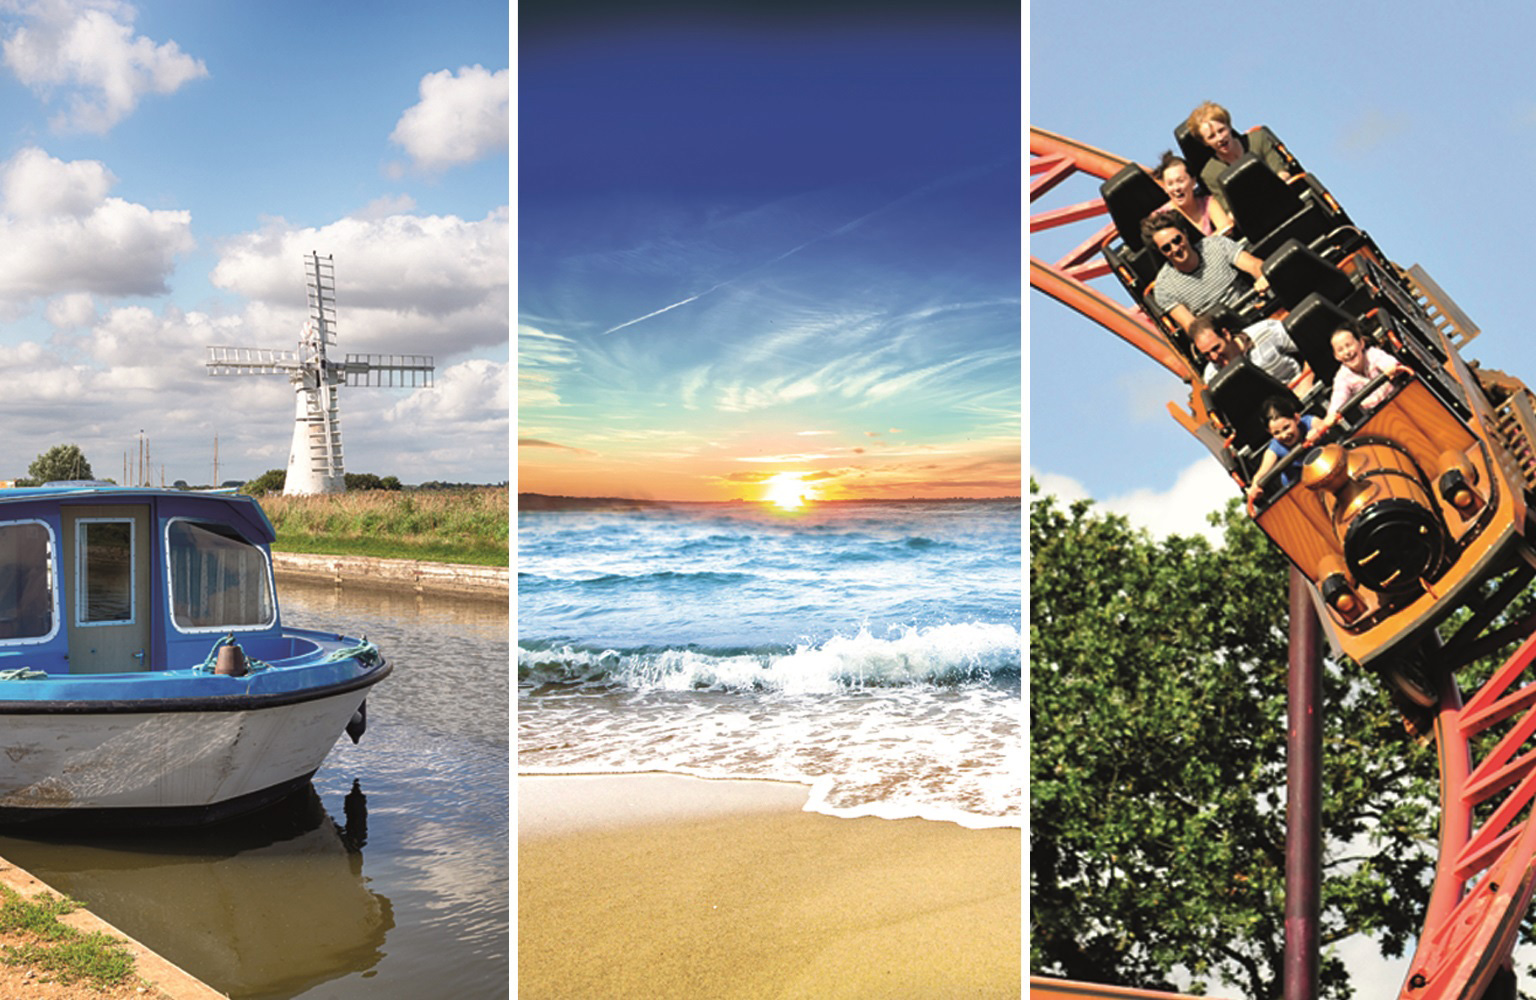 Big Sky Country: Norfolk gems, attractions, beaches and enchanting waterland